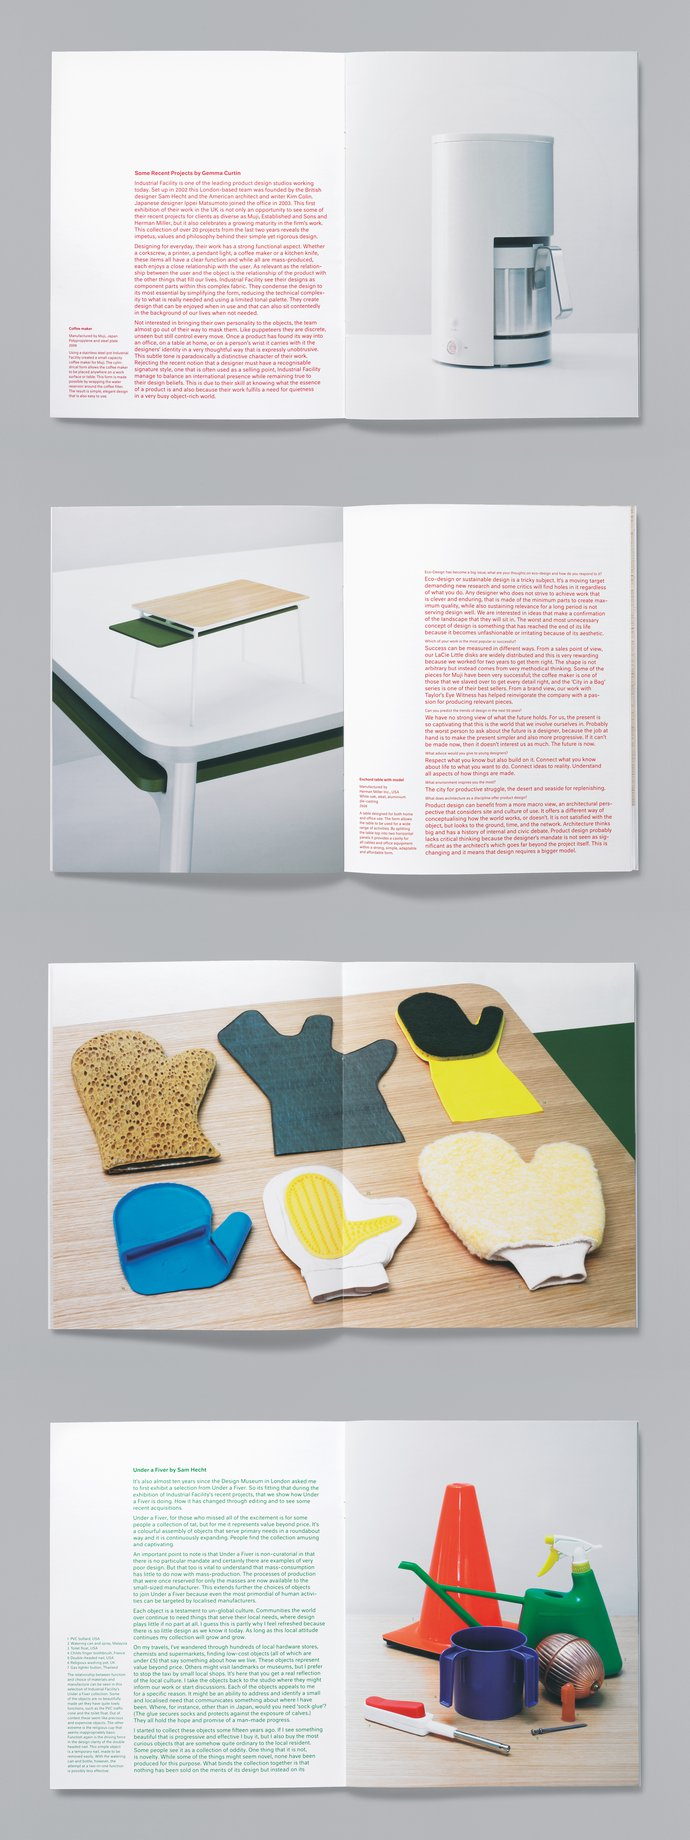 Design Museum – Industrial Facility: Some Recent Projects/Under a Fiver, 2008 (Exhibition), image 5